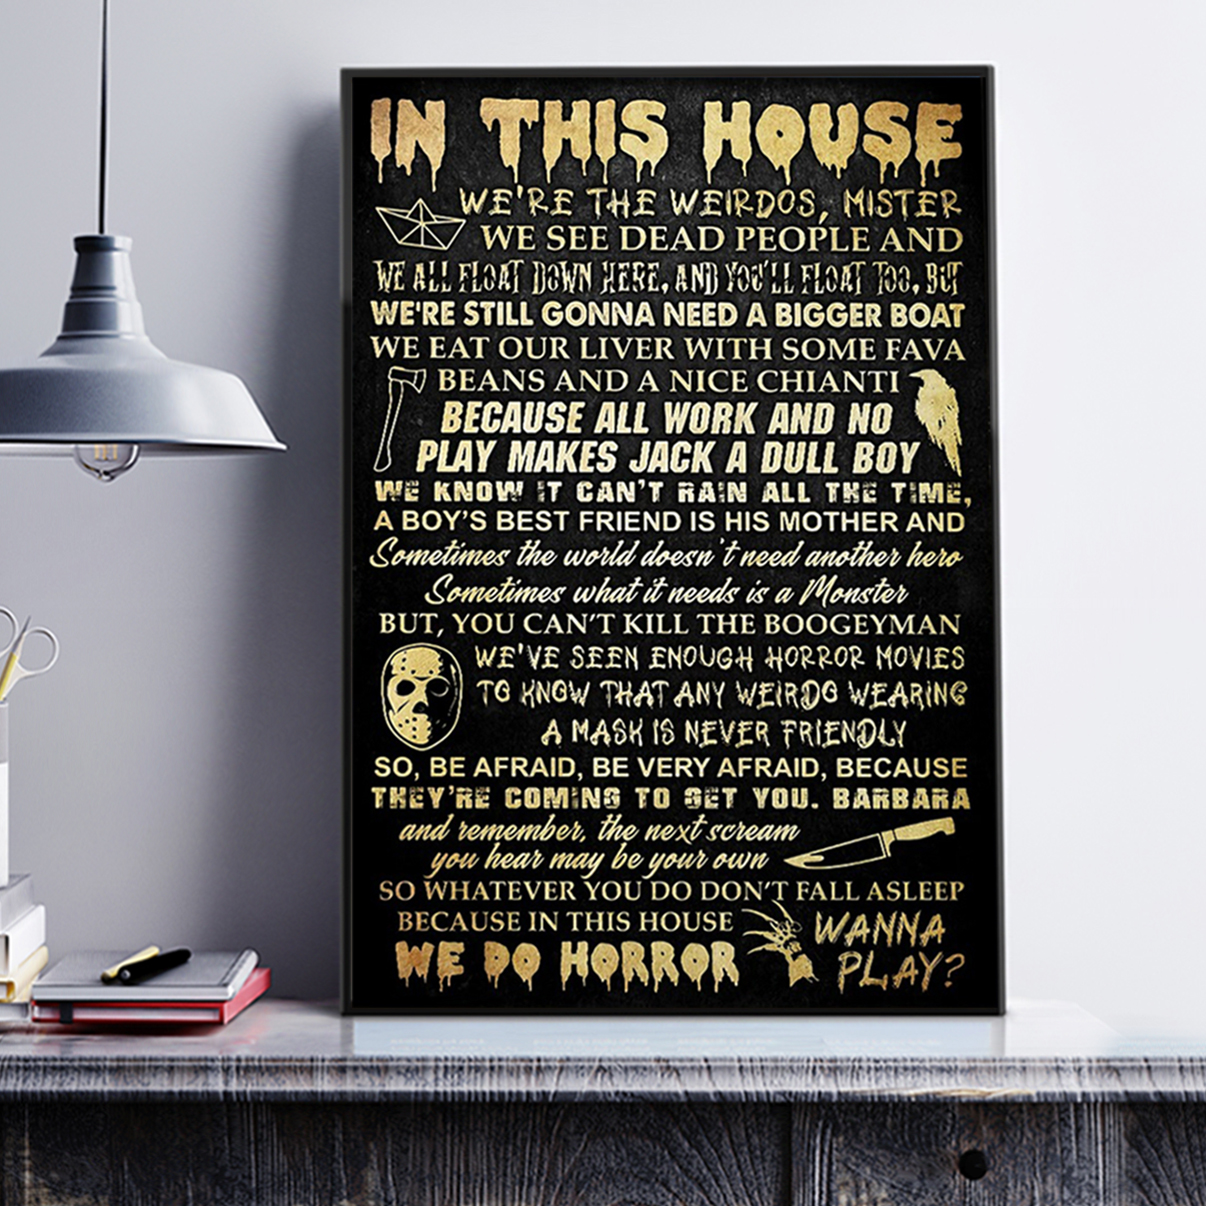 In this house horror movie poster A1